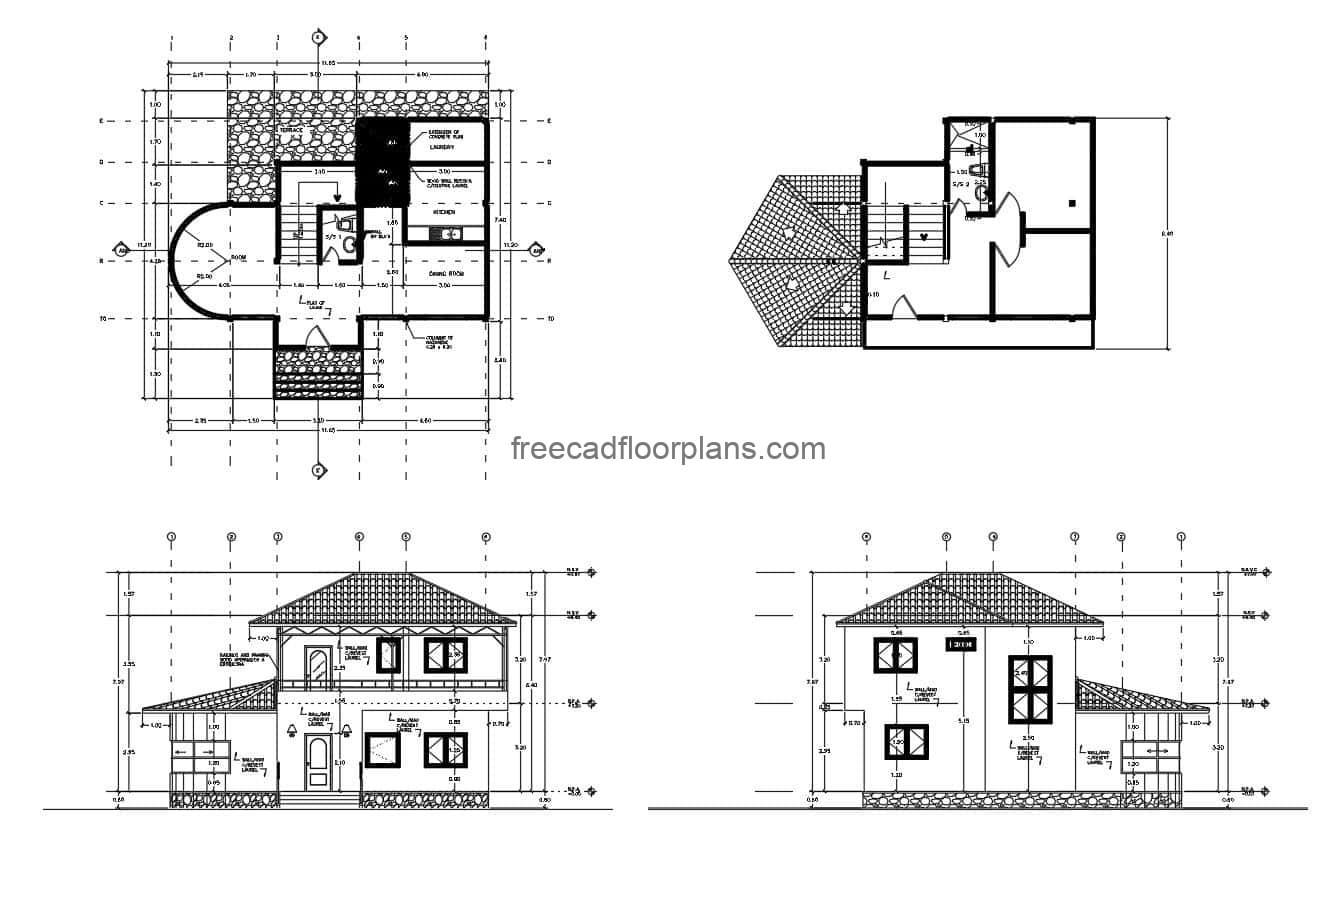 Architectural 2D plans in DWG format for a two-level country residence with sloping ceilings, simple dimensions, curved living room, kitchen and dining room, half bathroom on the first level. Second level, terrace with two bedrooms and shared bathroom. CAD Plans DWG for free download.